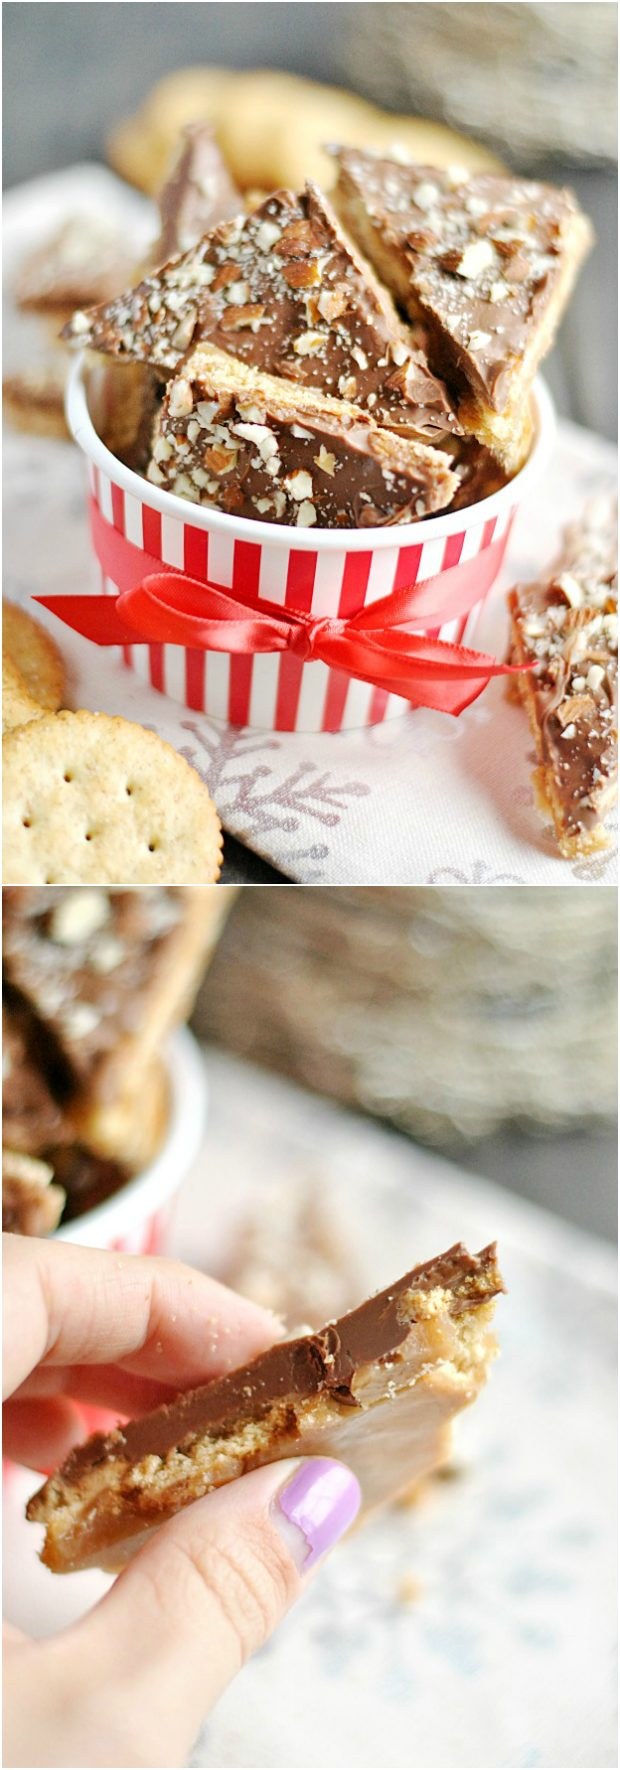 """I used to love making <a href=""""http://www.somethingswanky.com/ritz-cracker-toffee/"""" target=""""_blank"""">Ritz-filled toffee</a> growing up."""